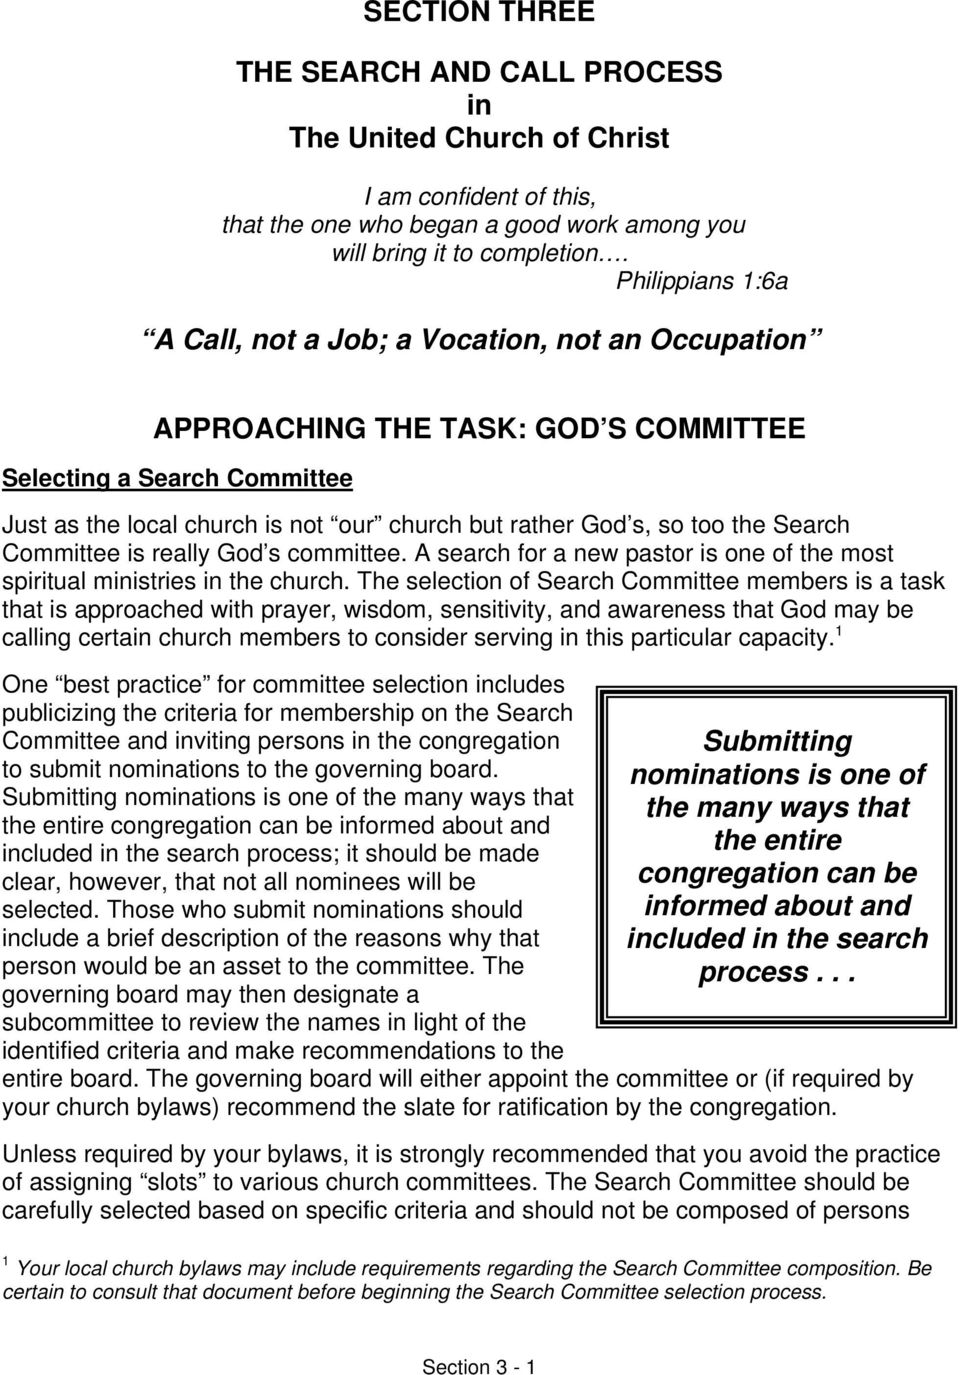 too the Search Committee is really God s committee. A search for a new pastor is one of the most spiritual ministries in the church.